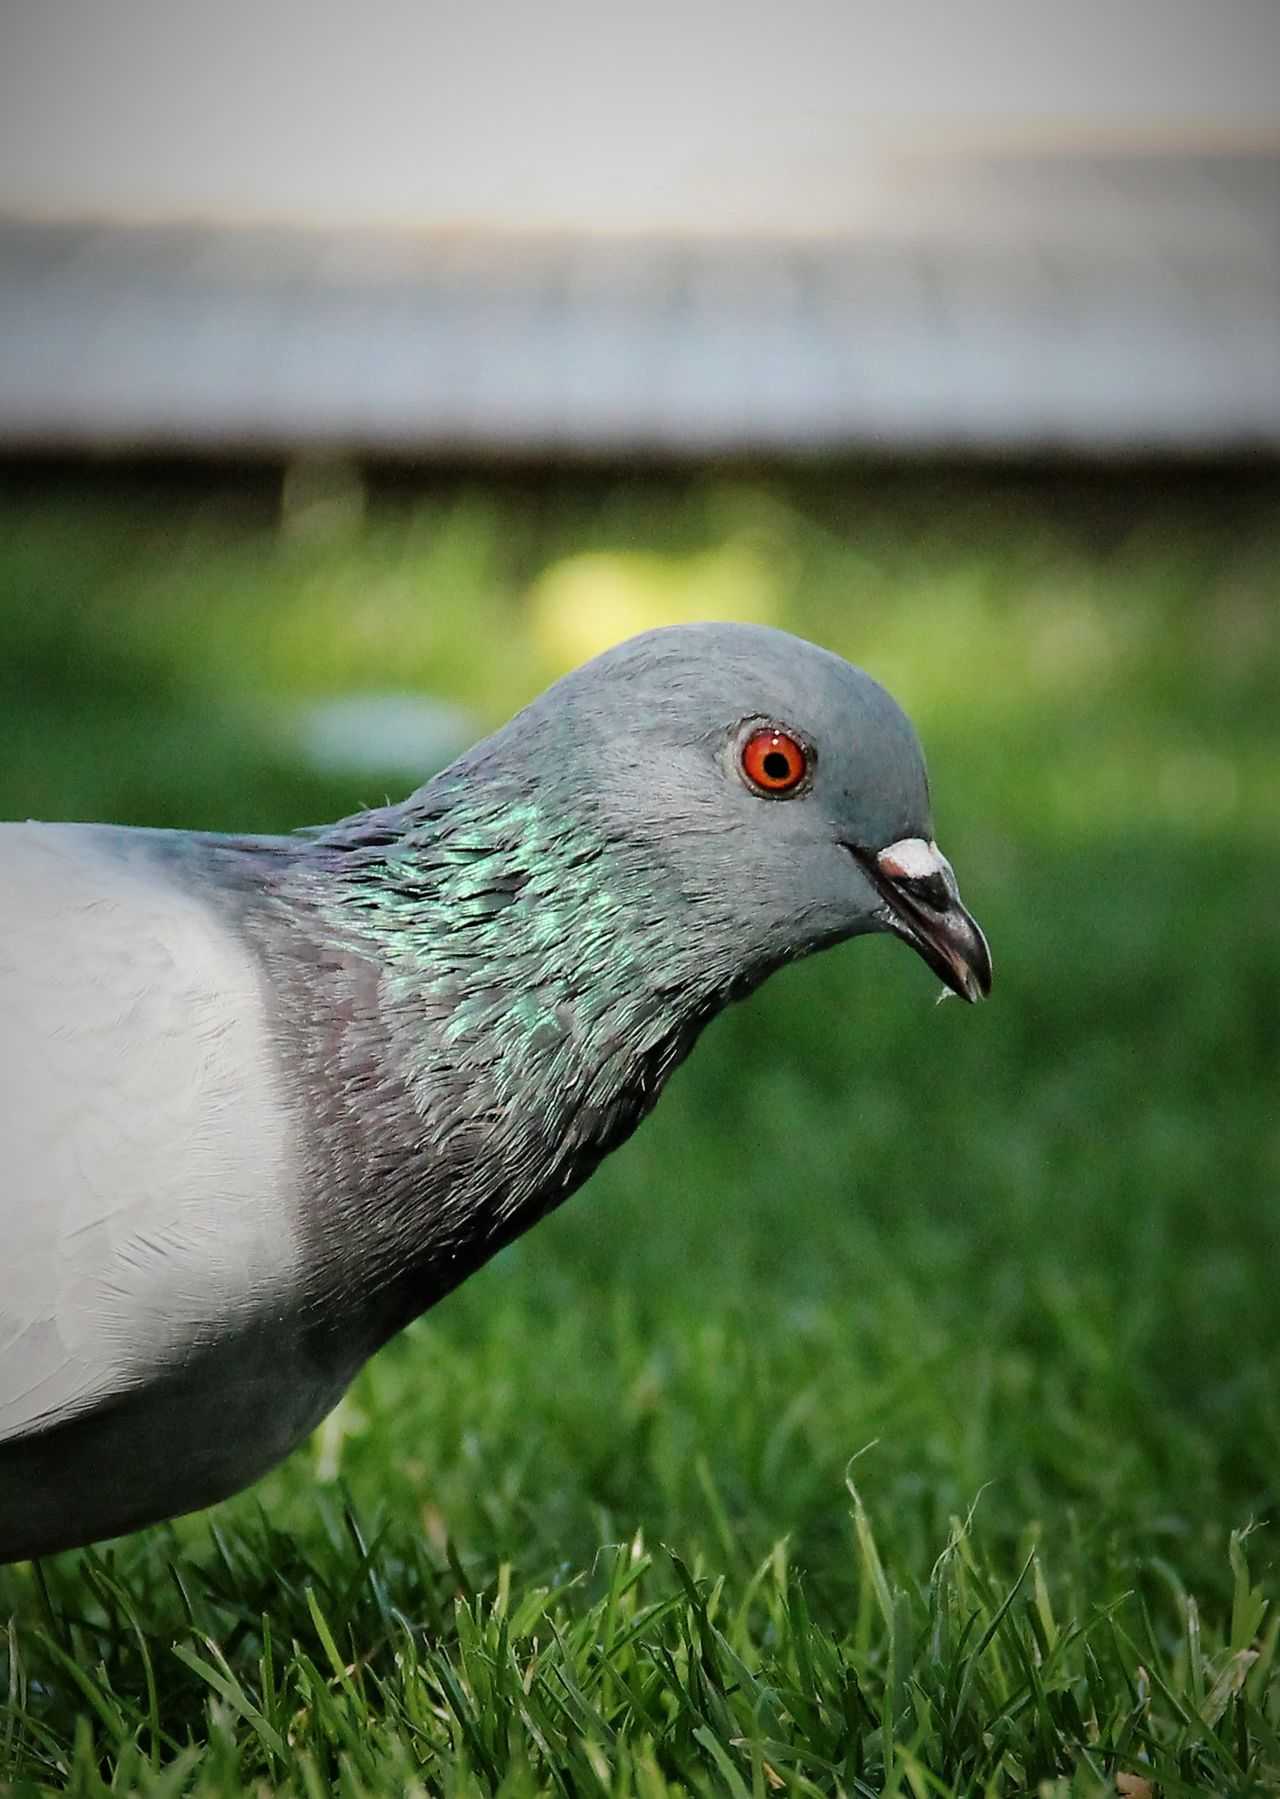 Animal Eye Animal Head  Animal Themes Animals In The Wild Beak Beauty In Nature Bird Close-up Day Field Focus On Foreground Grass Grassland Green Green Color Nature No People One Animal Outdoors Profile Profile View Side View Tranquil Scene Tranquility El Tiempo Detenido eyeemgalery